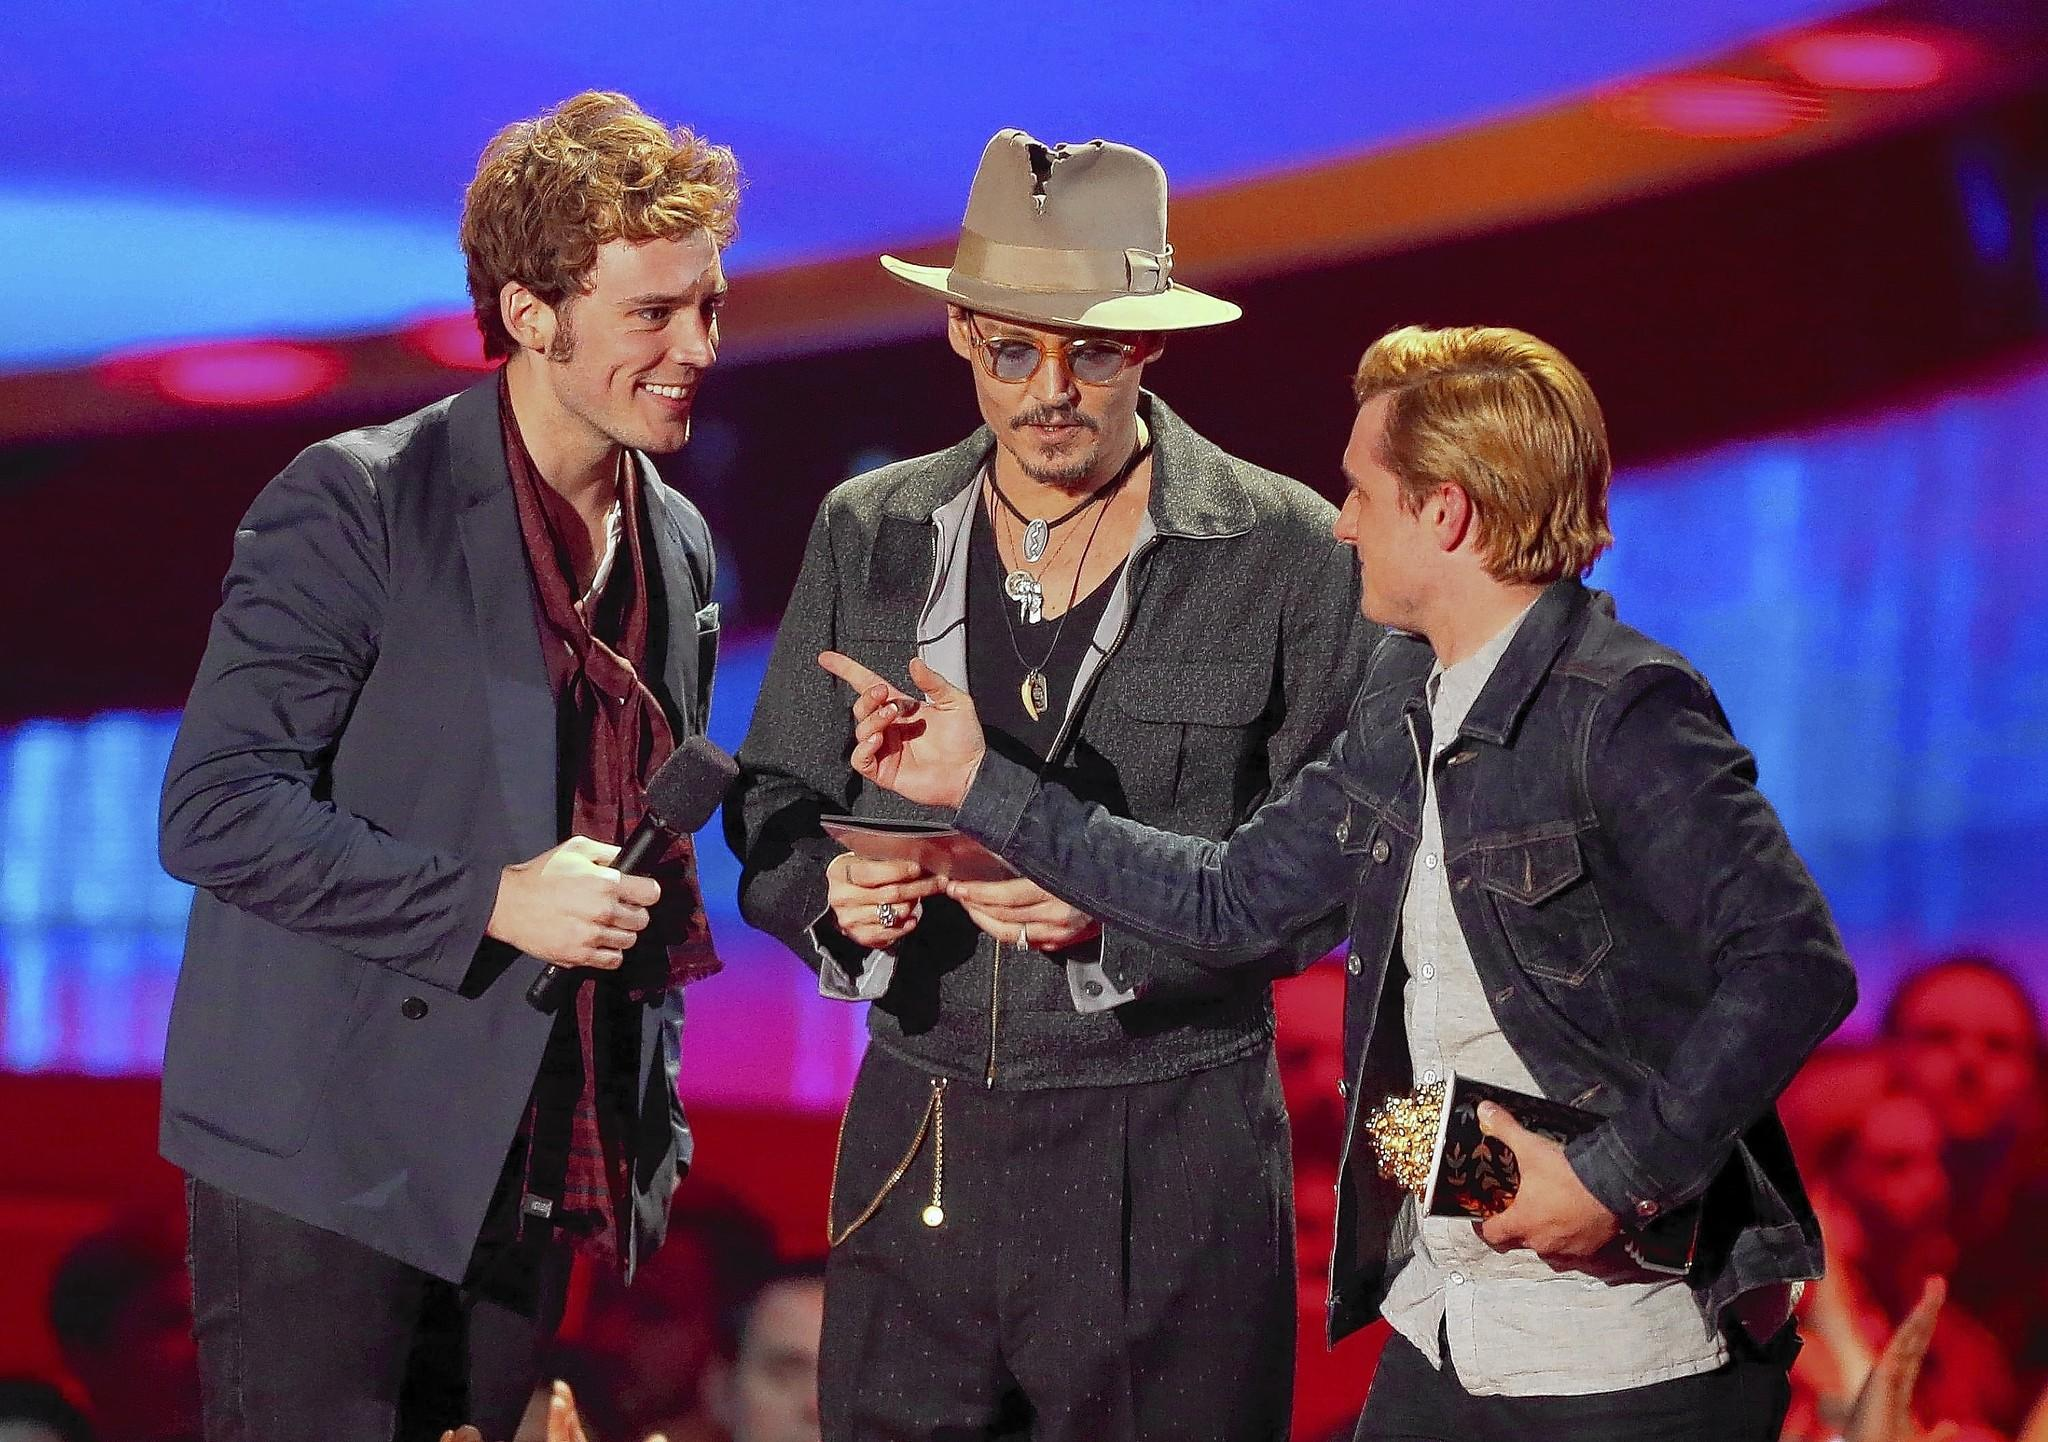 """Actors Sam Claflin, left, and Josh Hutcherson, right, accept the movie of the year award for """"The Hunger Games: Catching Fire"""" from actor Johnny Depp at the 2014 MTV Movie Awards at Nokia Theatre L.A. Live on April 13, 2014, in Los Angeles."""